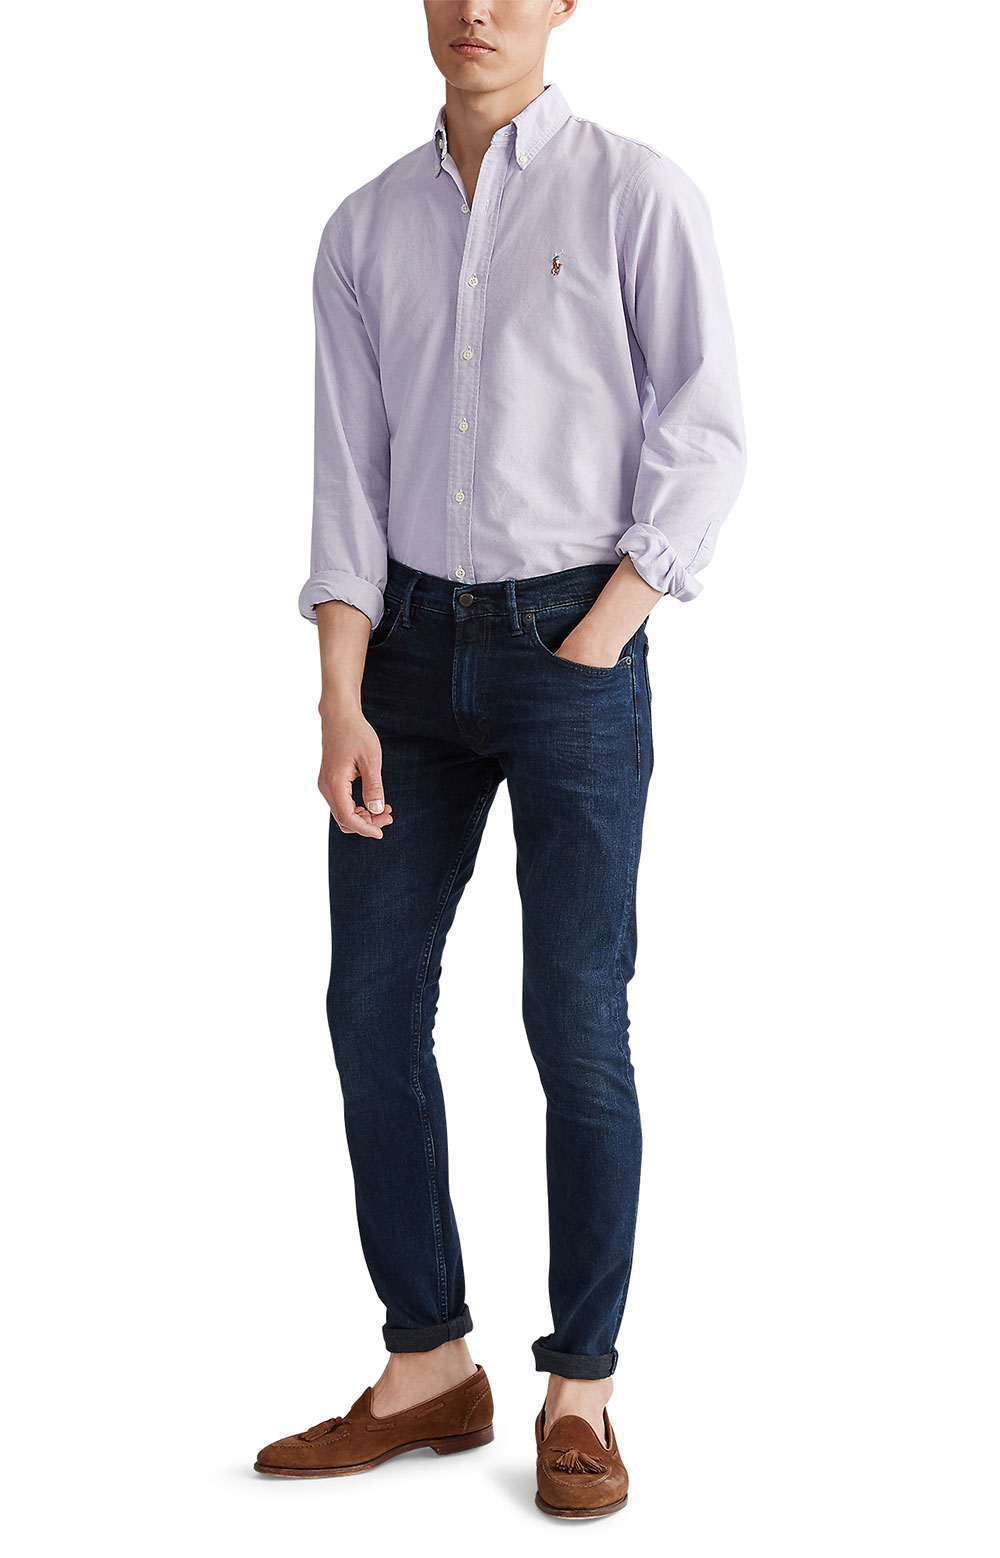 Classic Fit Oxford Shirt - Thistle  4